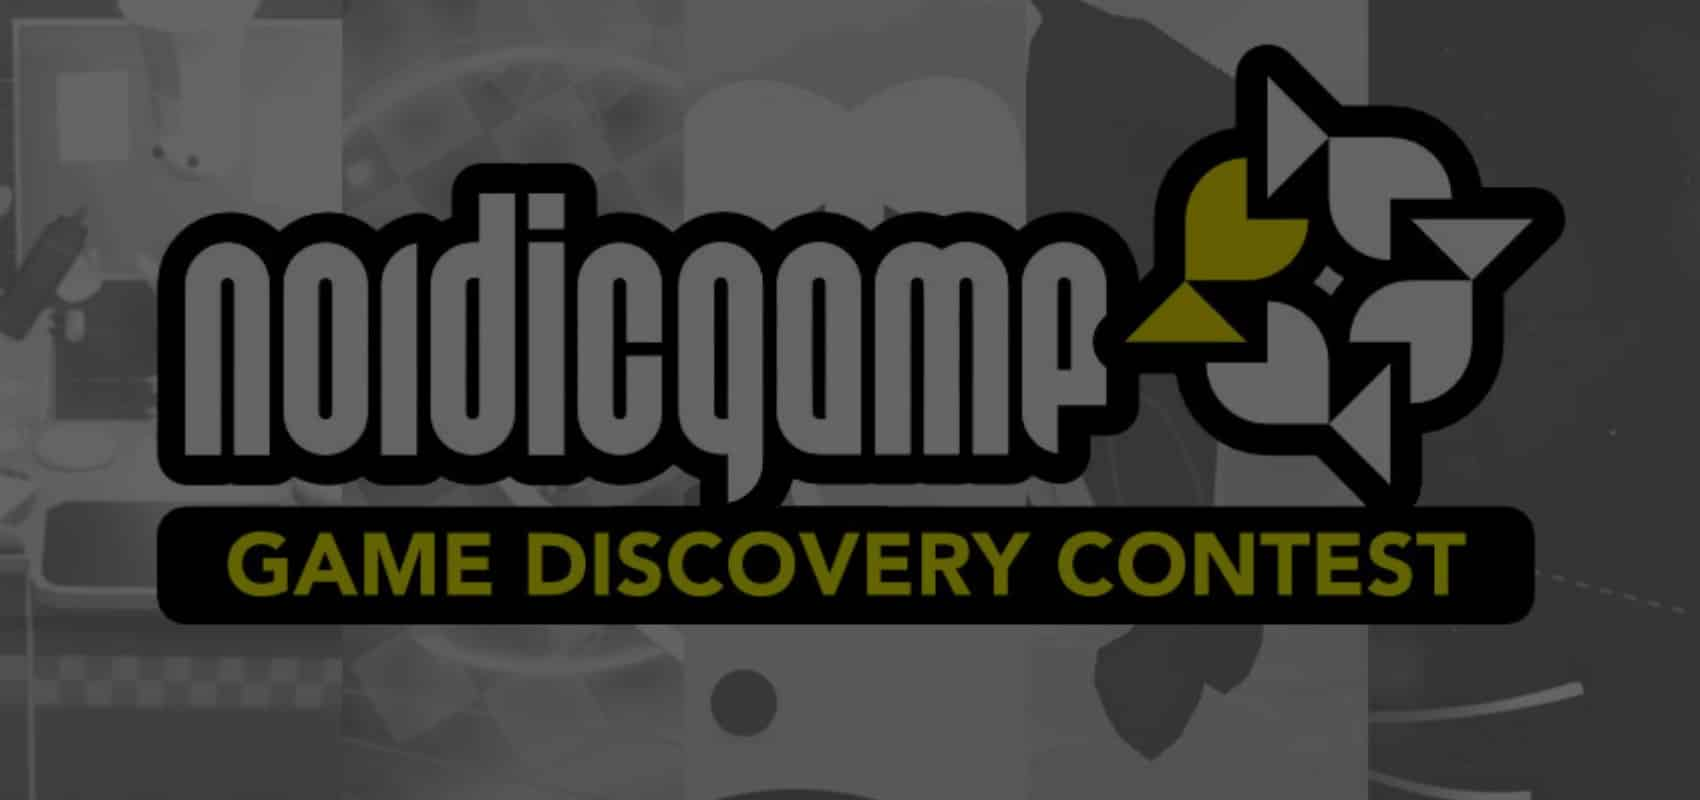 2019 Nordic Game Discovery Contest Finalists Revealed